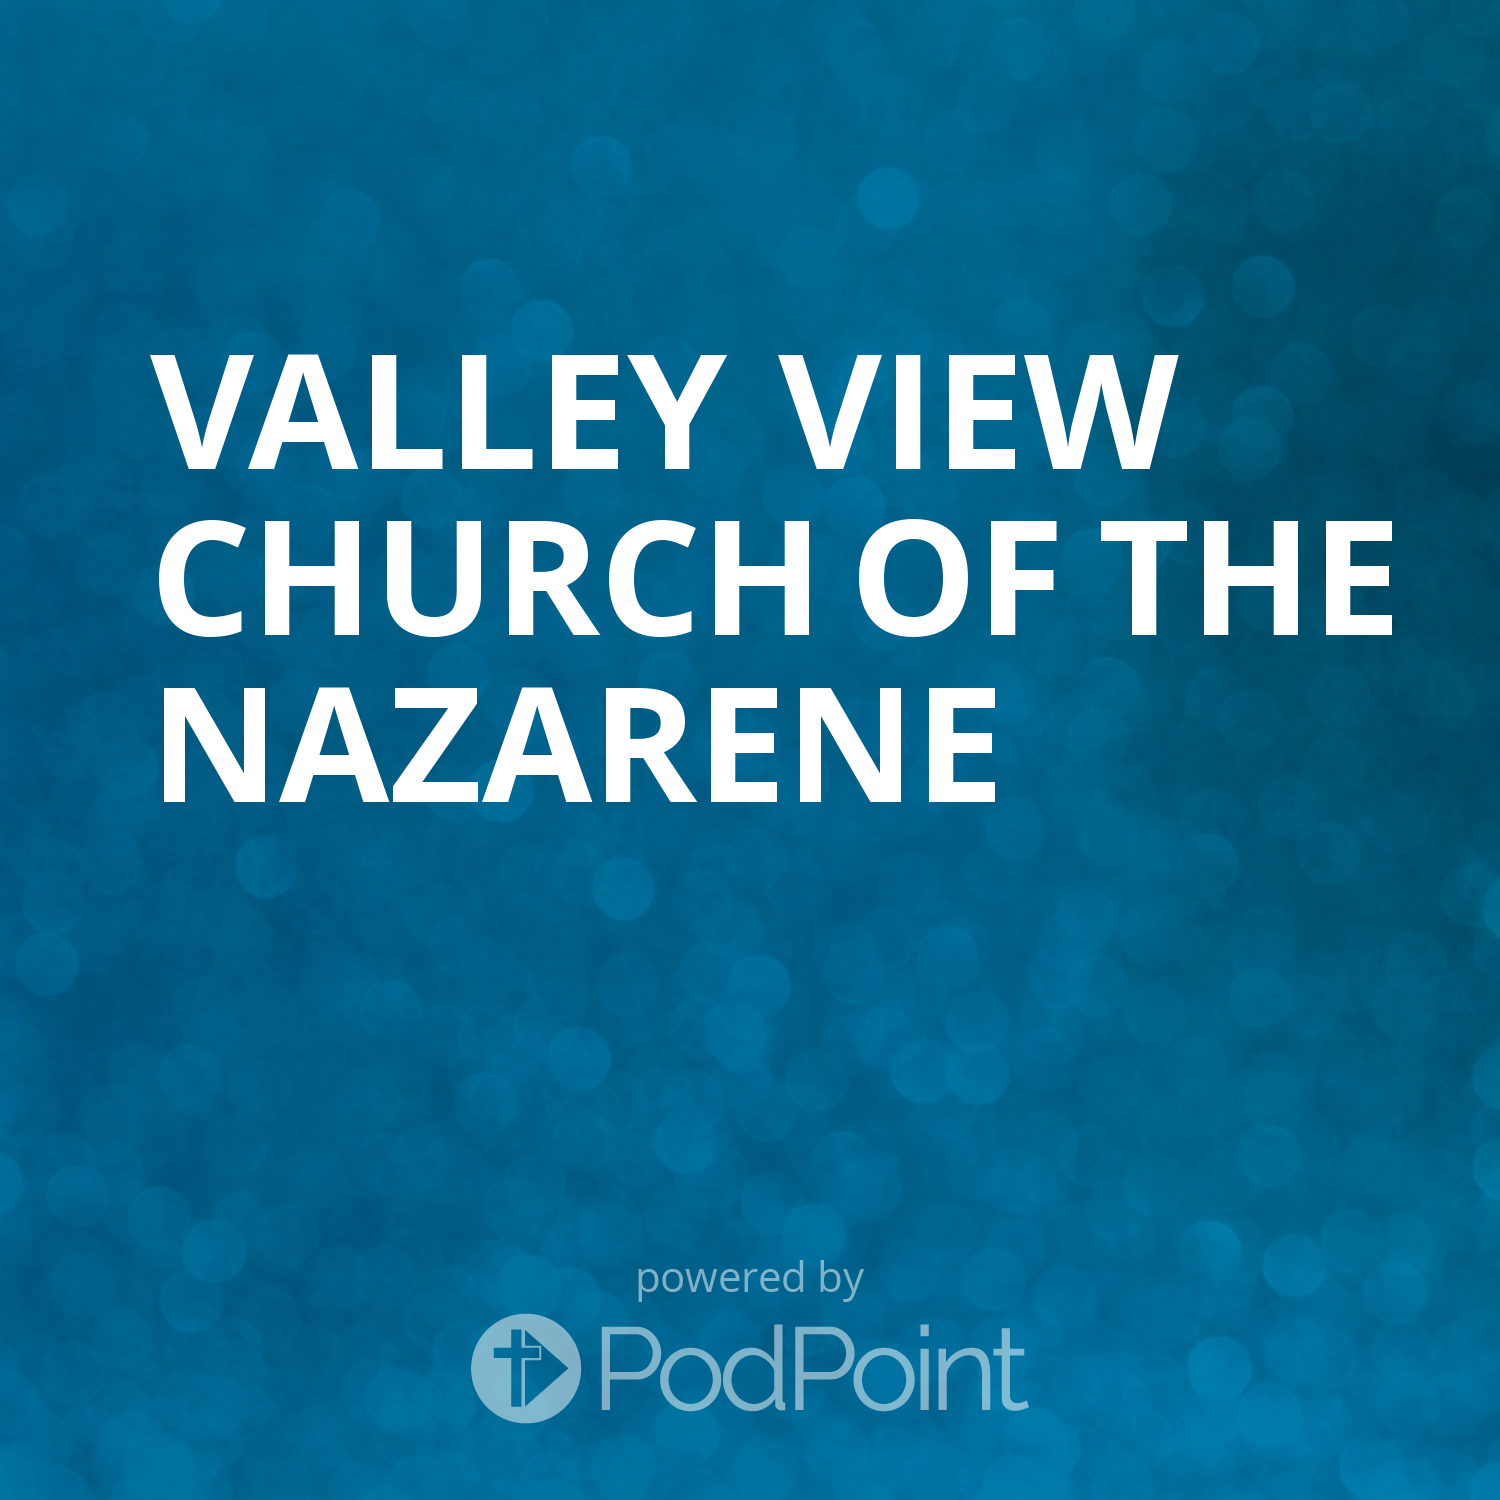 Valley View Church of the Nazarene